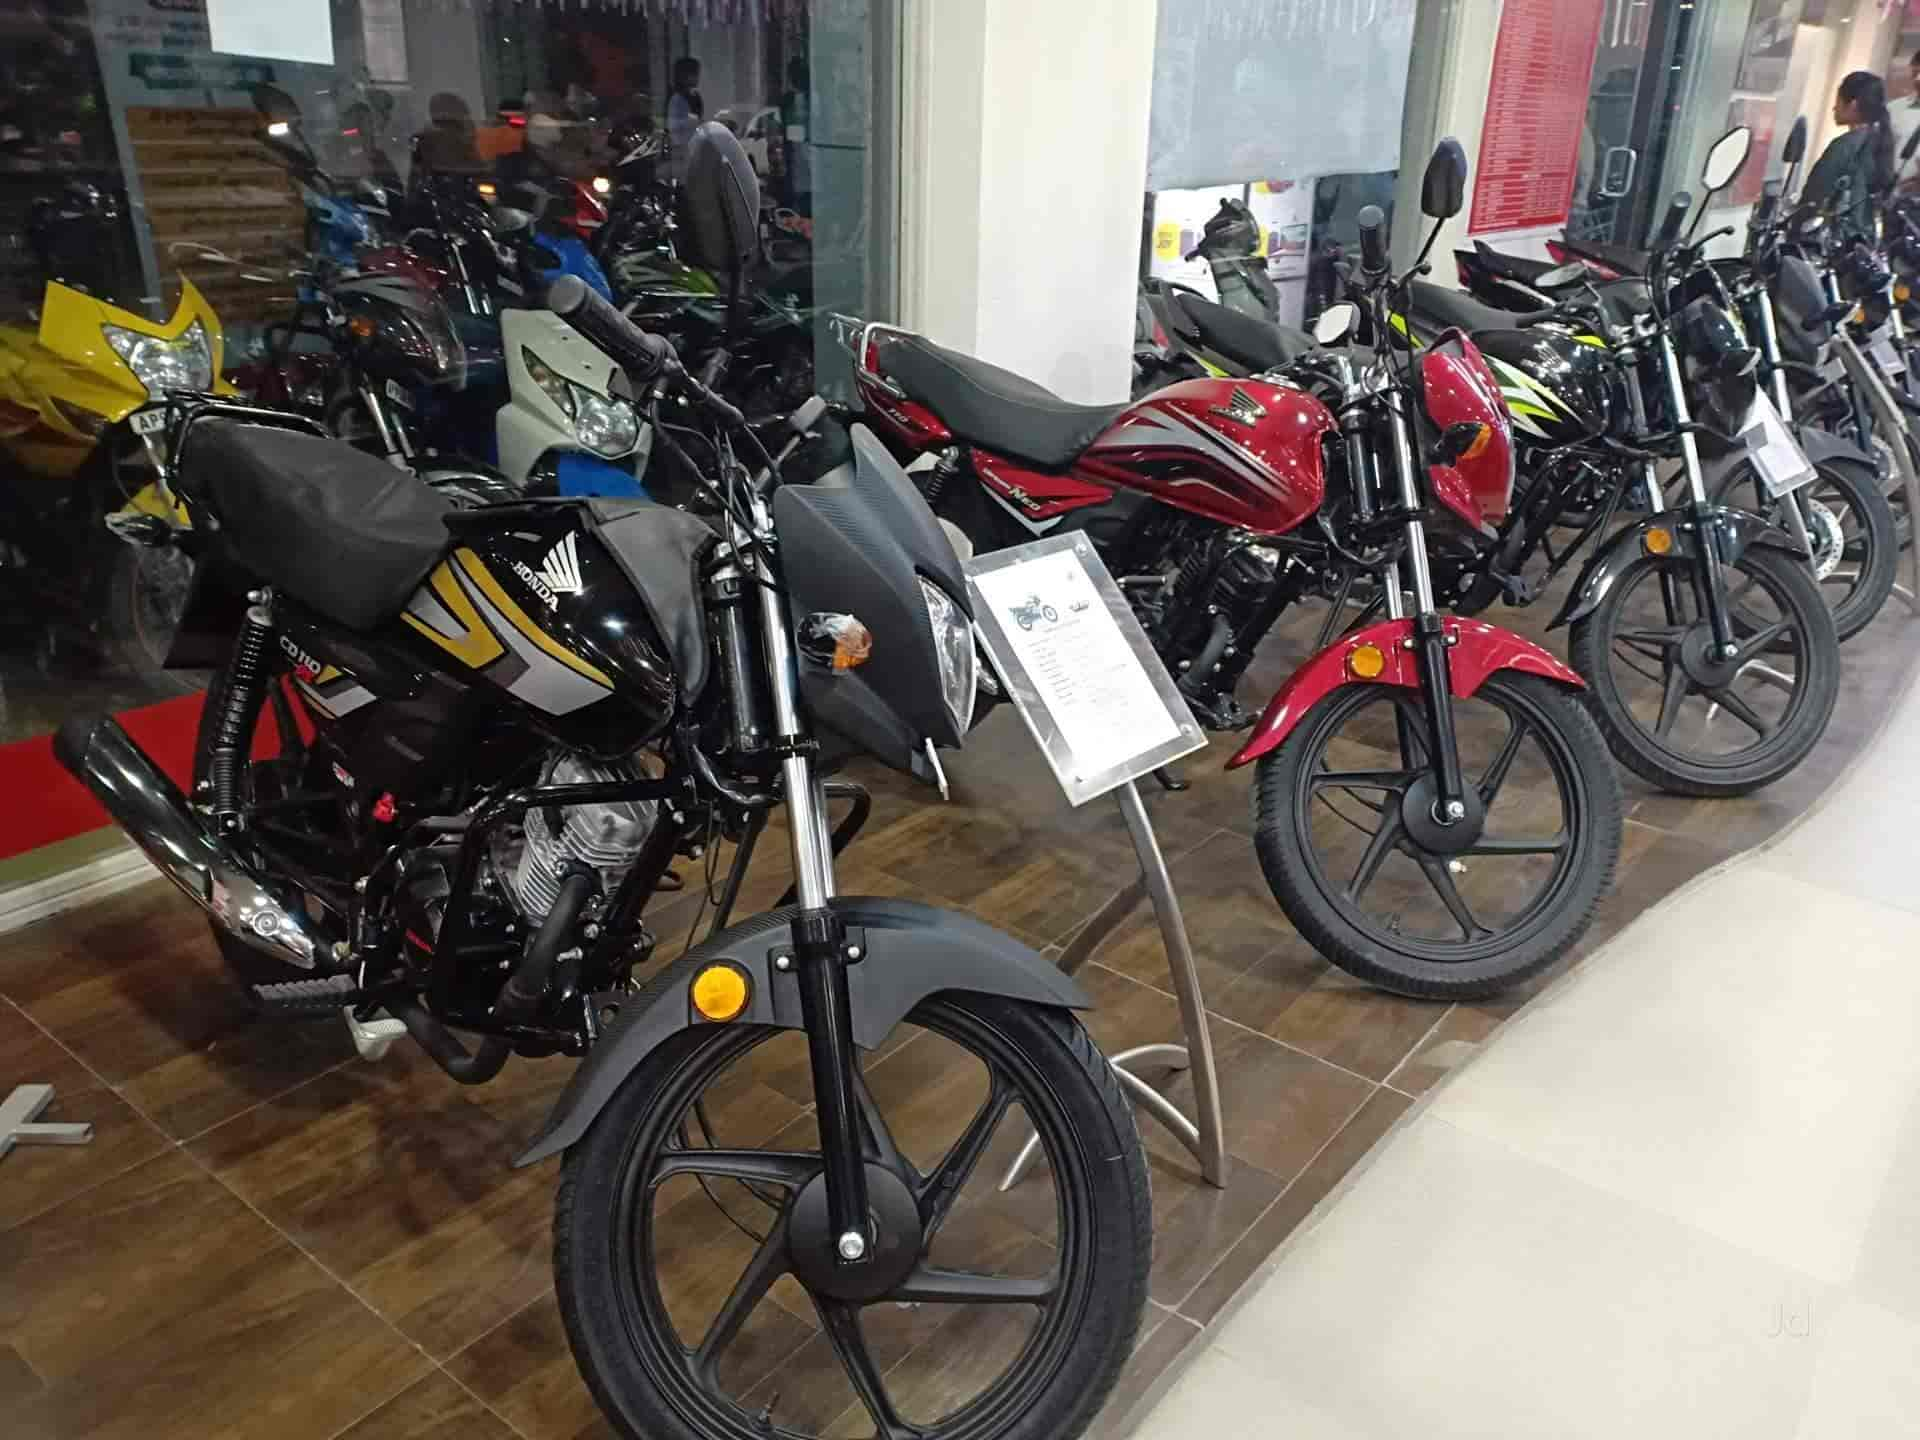 Jsp Honda Kukatpally Motorcycle Dealers In Hyderabad Justdial Repair Forum